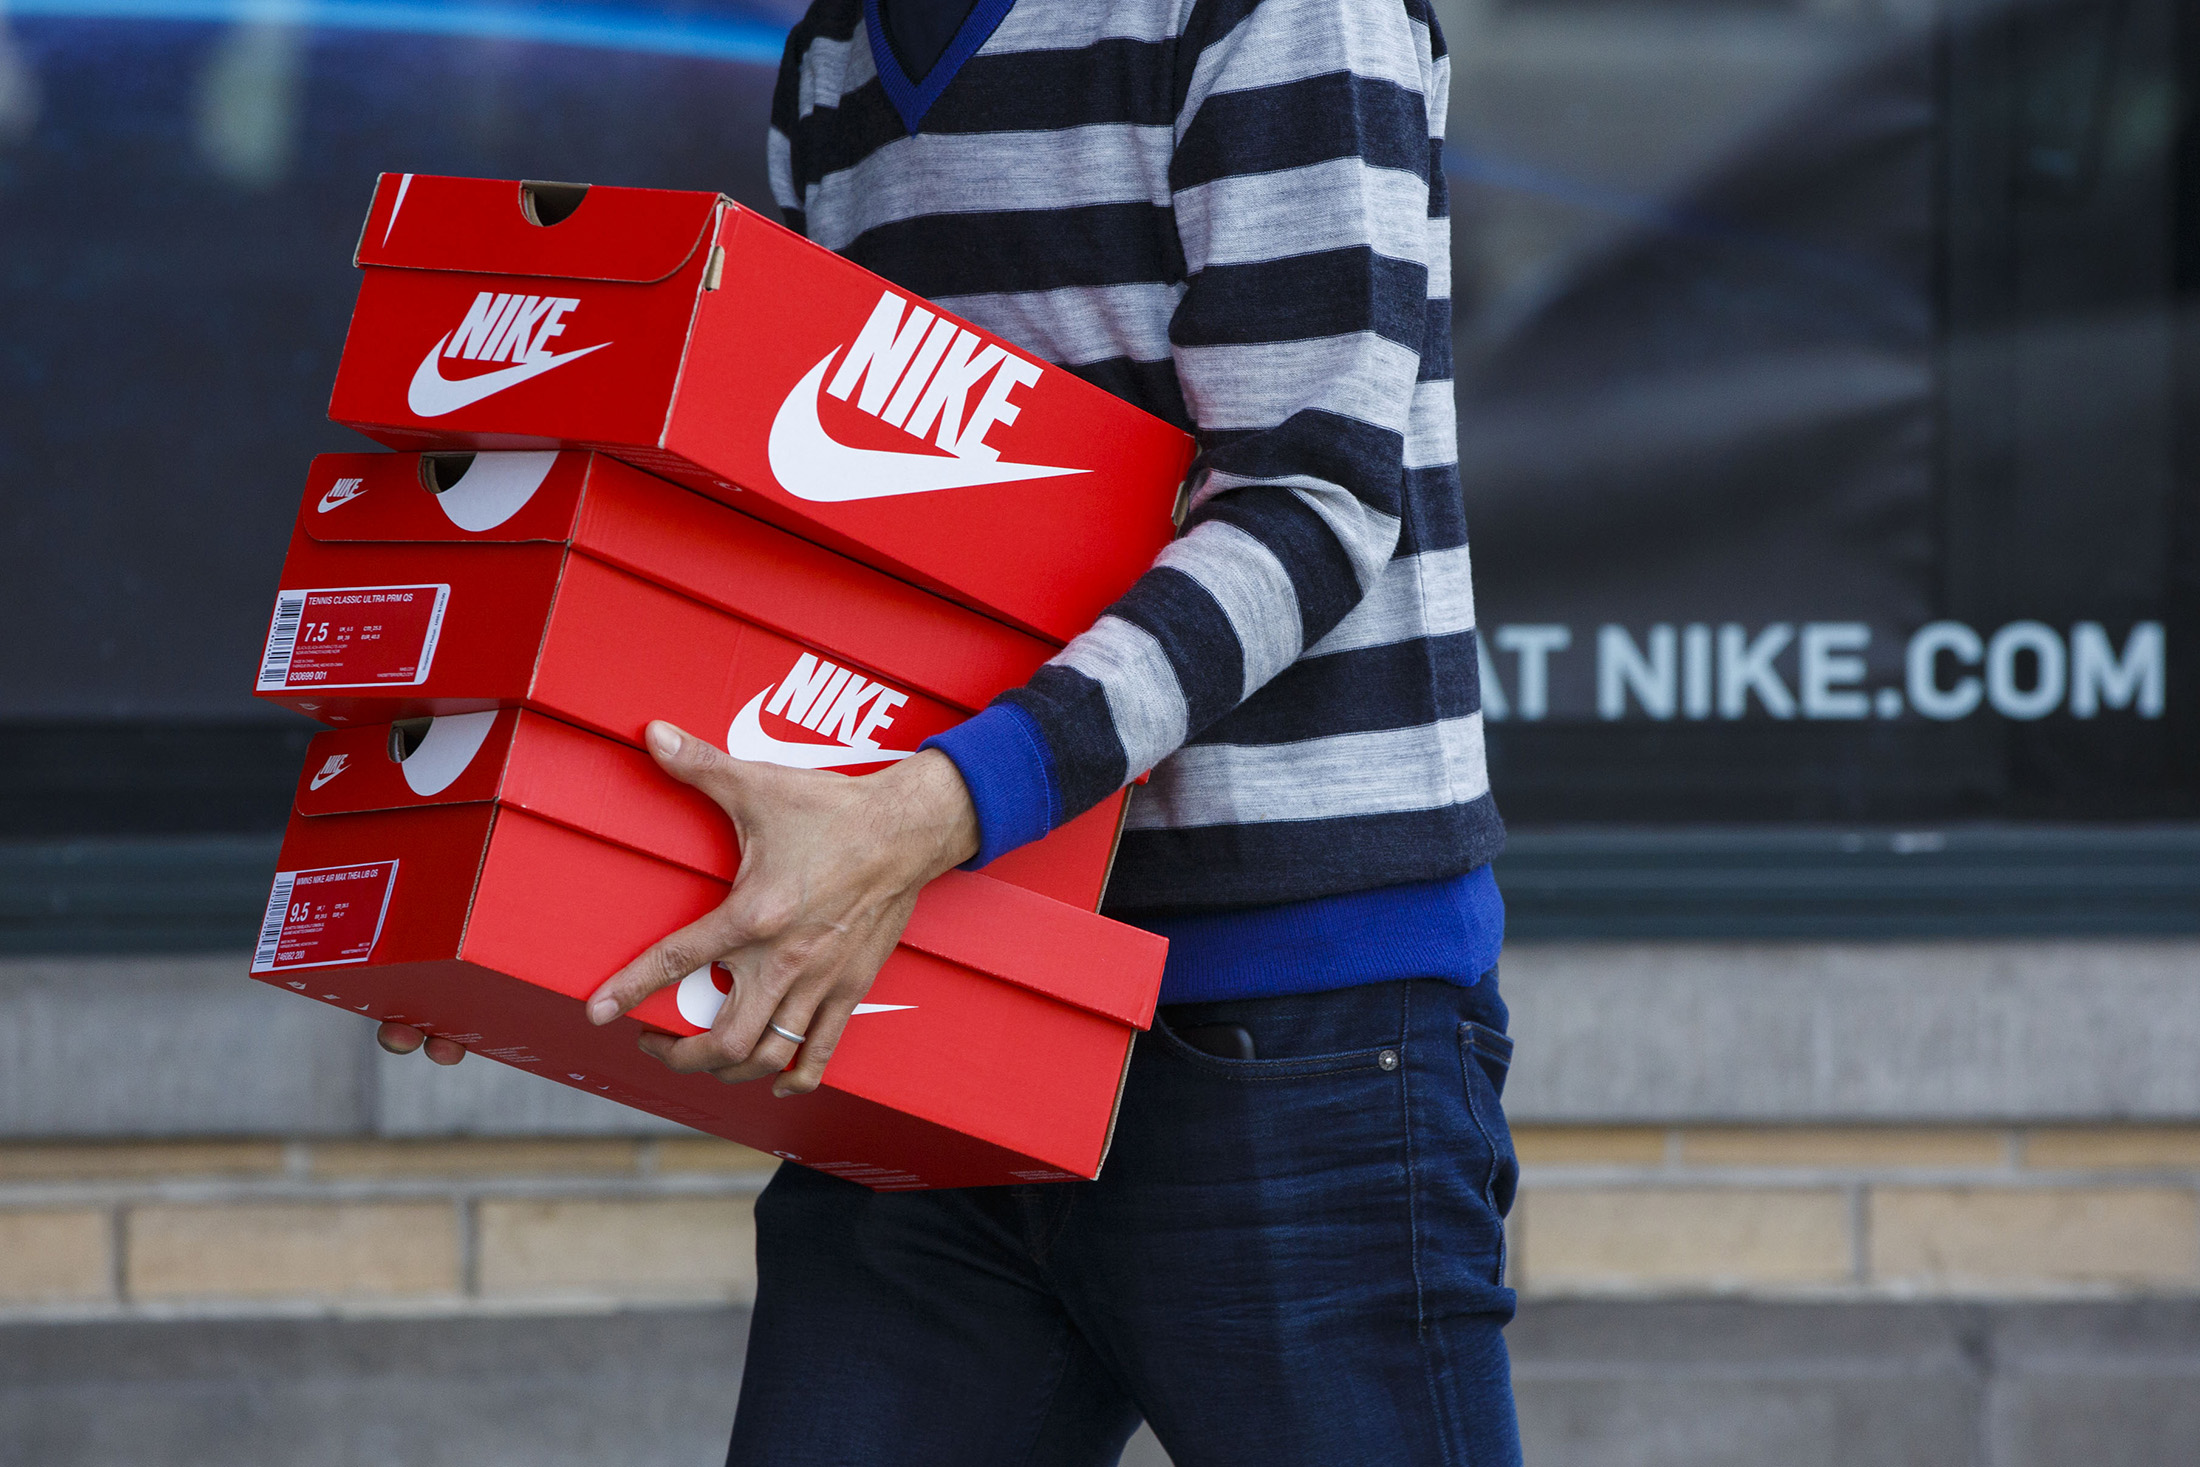 violación marca Raramente  Nike Pulling Its Products From Amazon in E-Commerce Pivot - Bloomberg